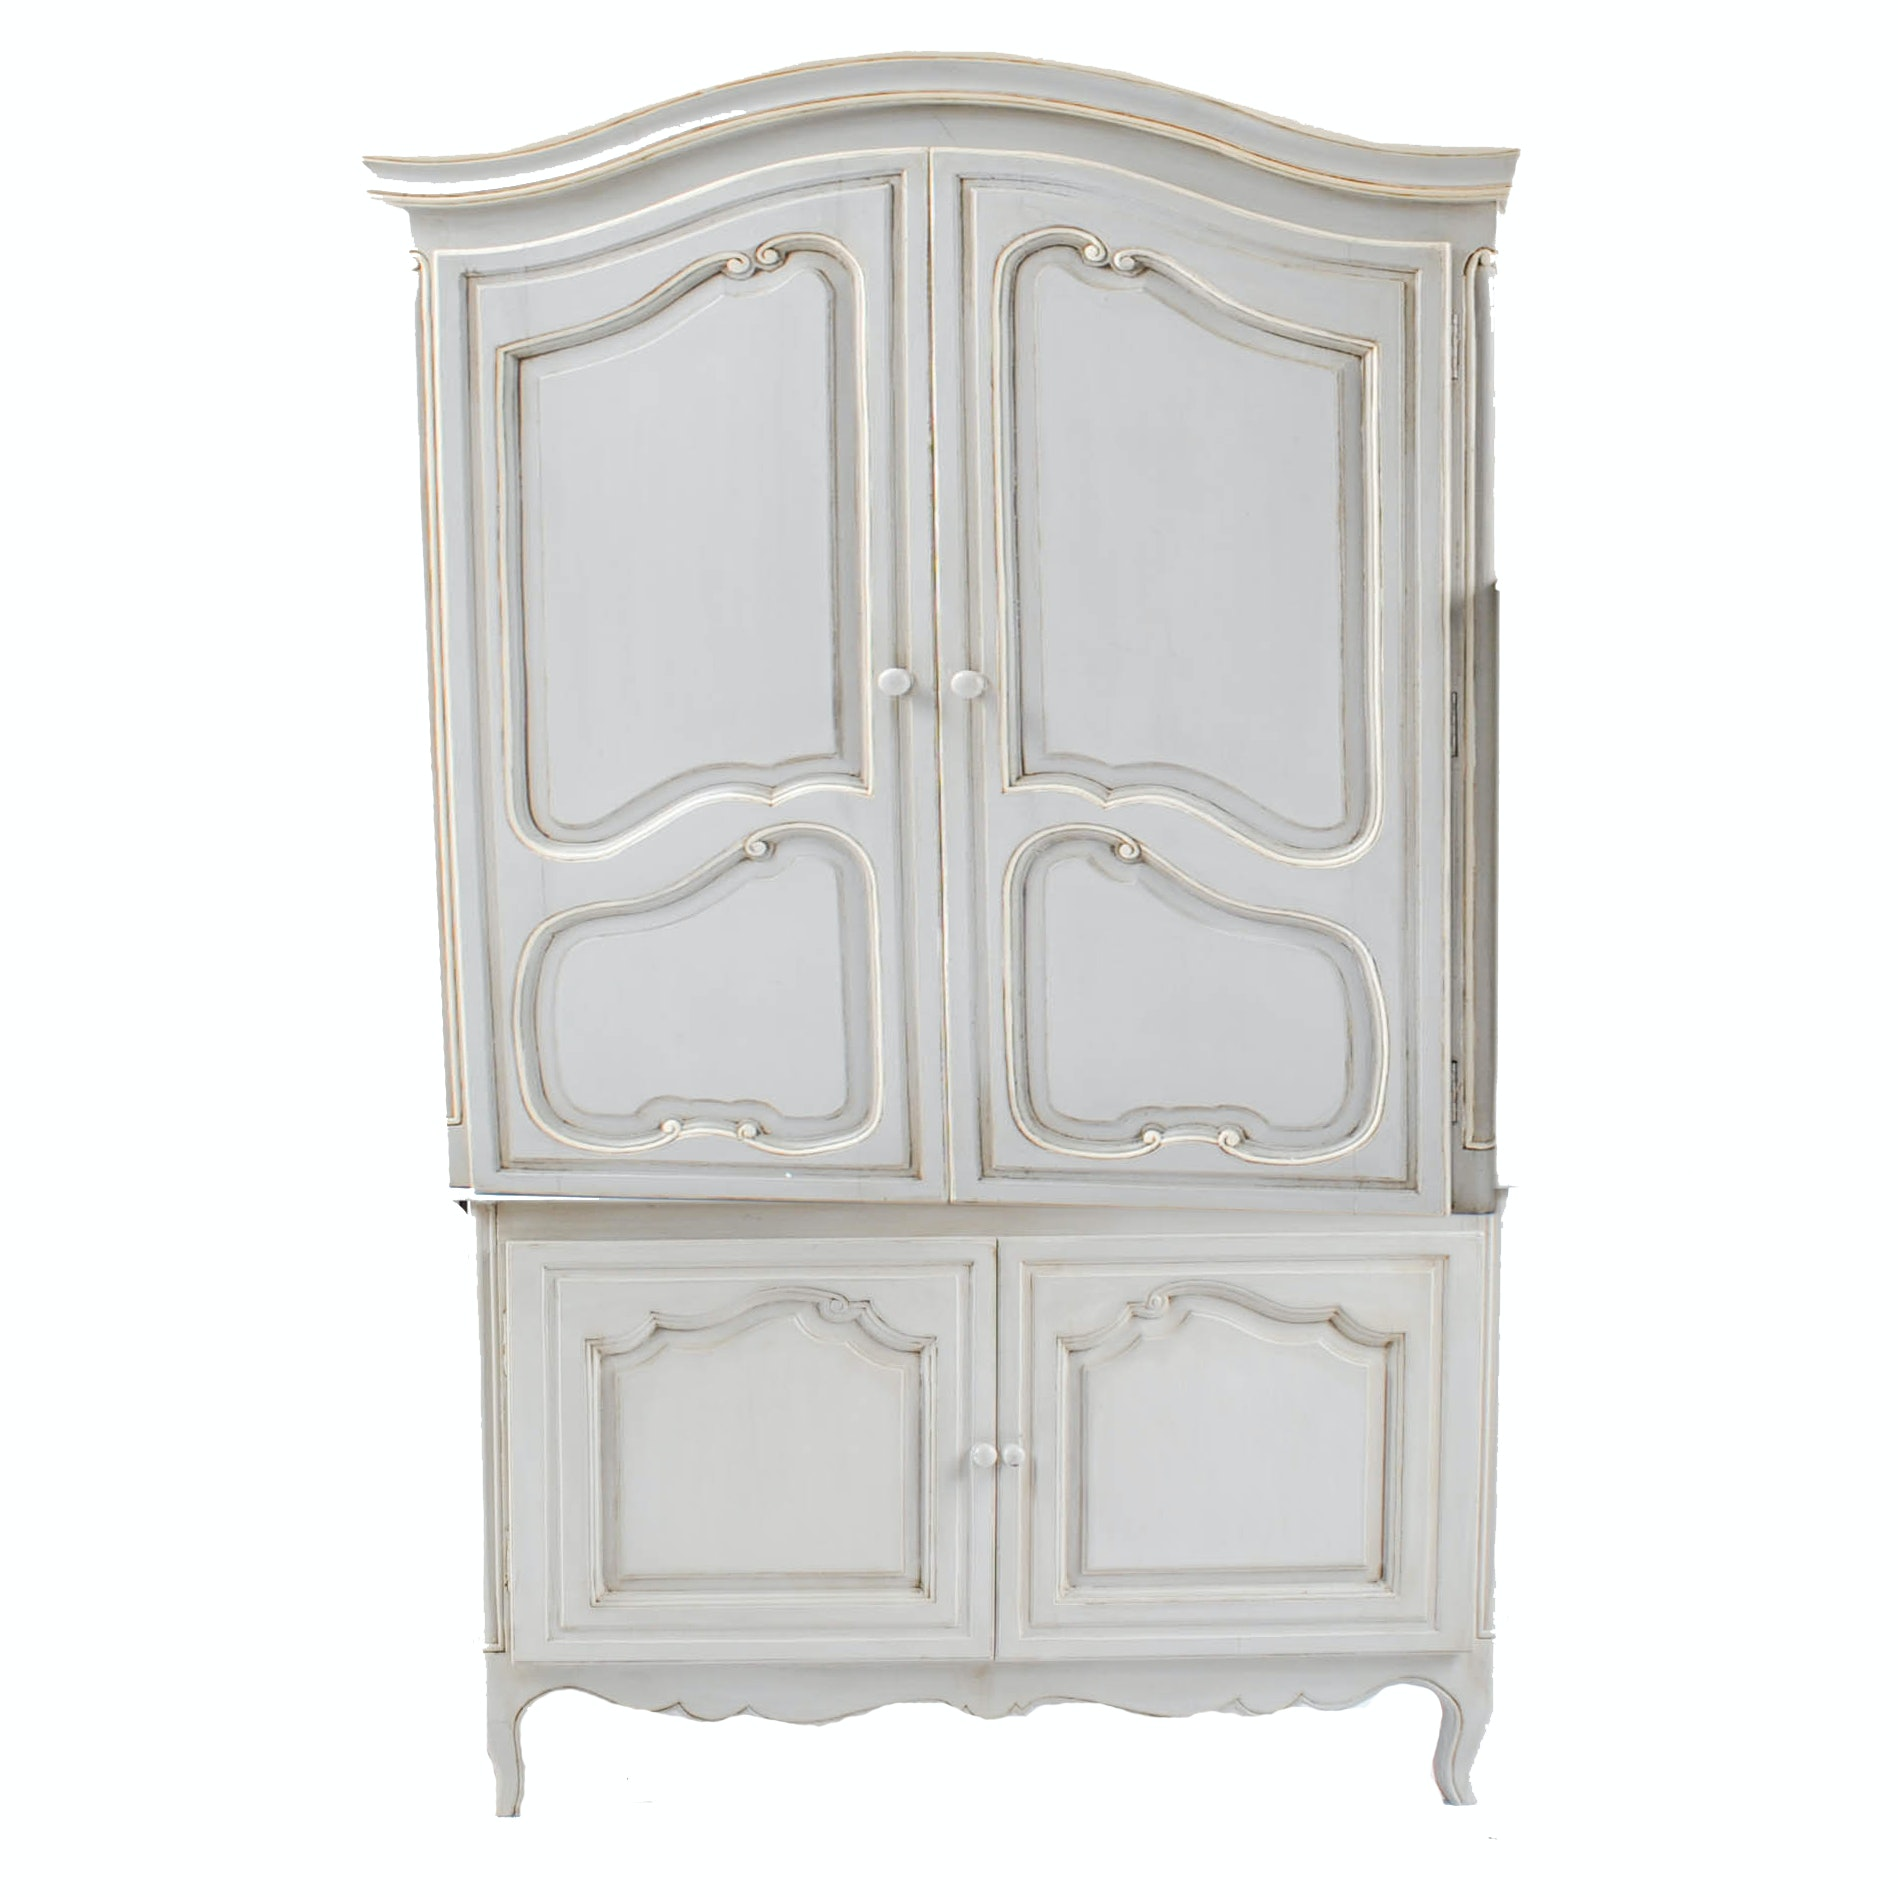 Vintage French Provincial Style Painted Cabinet